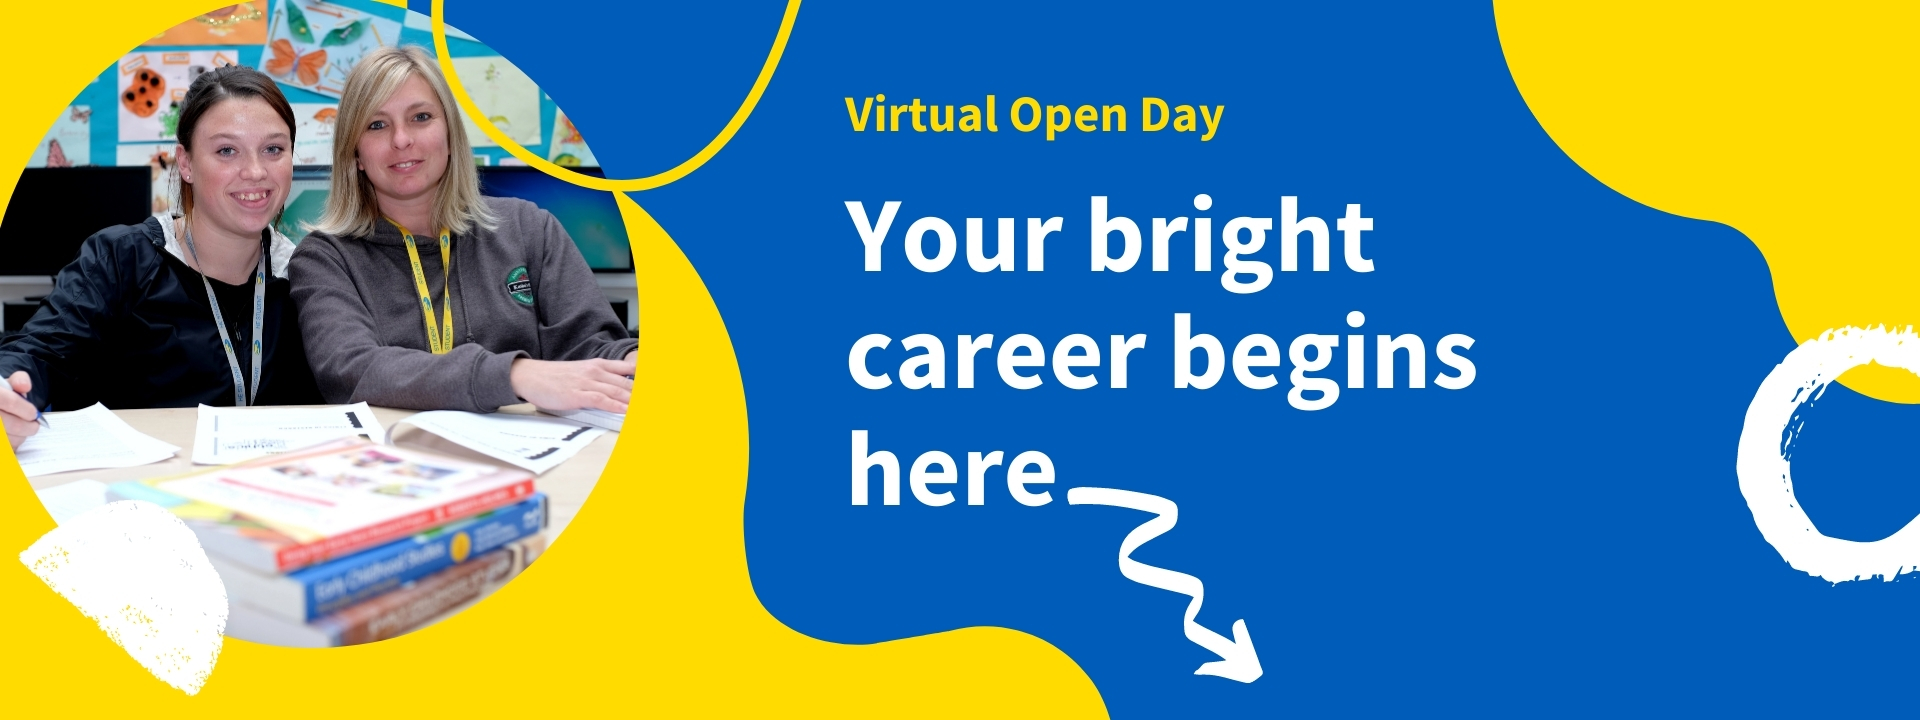 Your bright career begins here